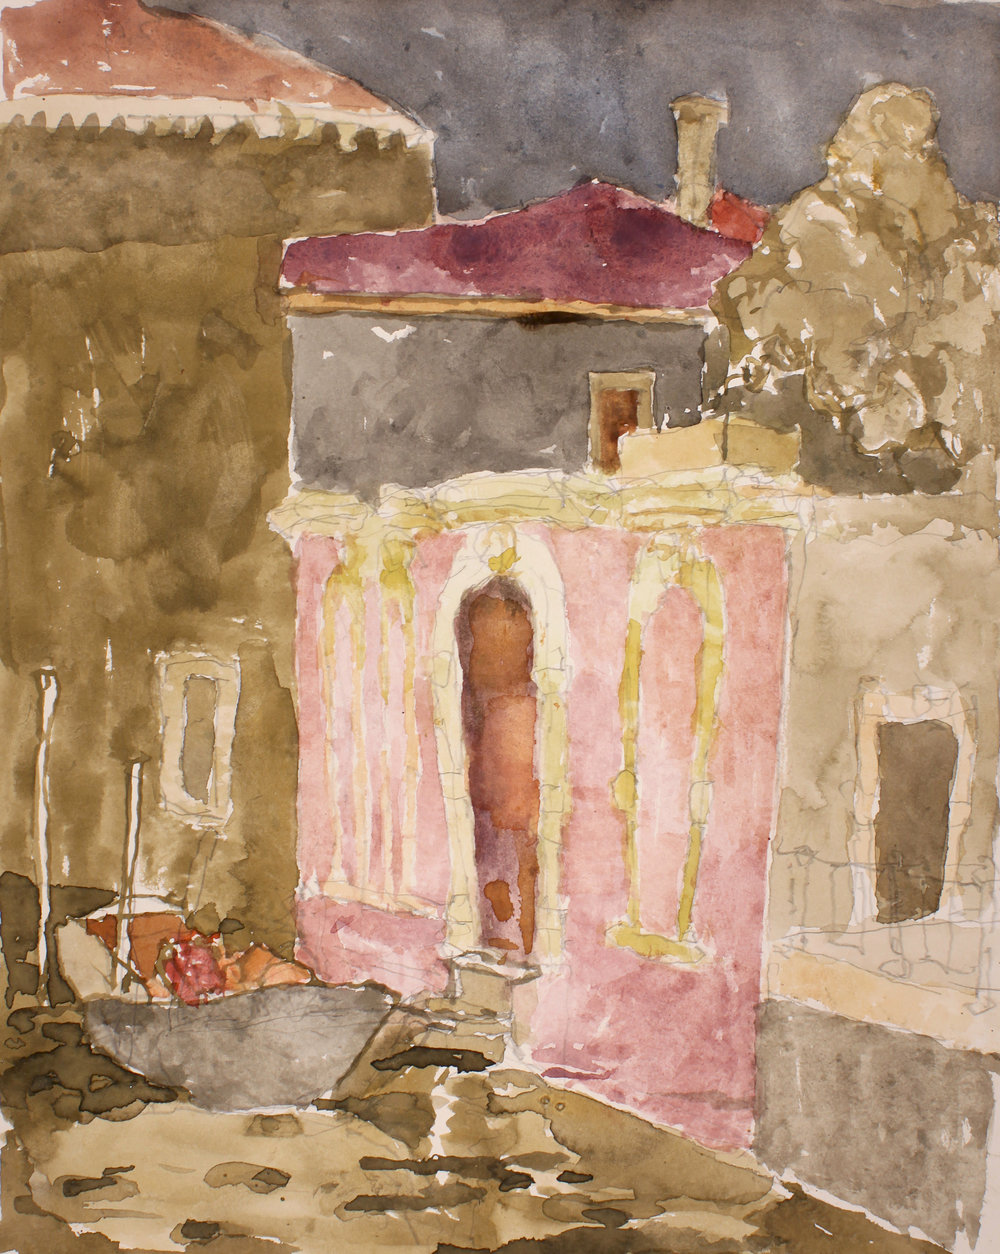 2001_Rio_della_Sensa_Venice_watercolour_and_pencil_on_paper_18x14in_WPF357.jpg